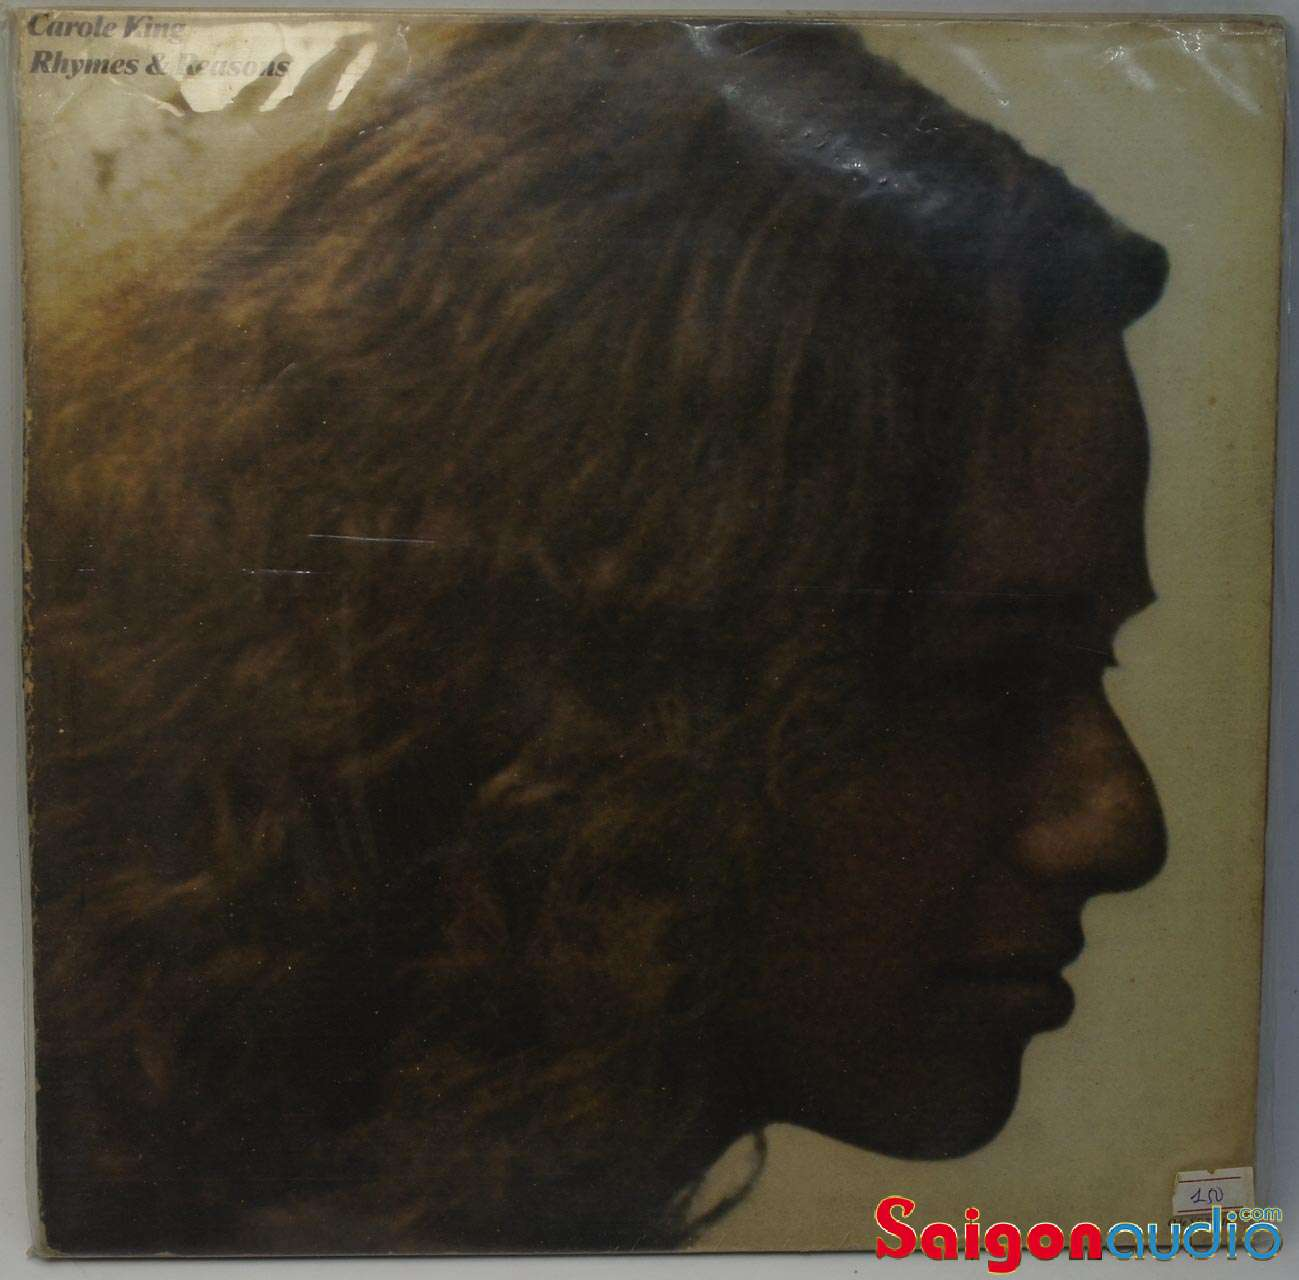 Đĩa than LP Carole King - Rhymes & Reasons (1972)